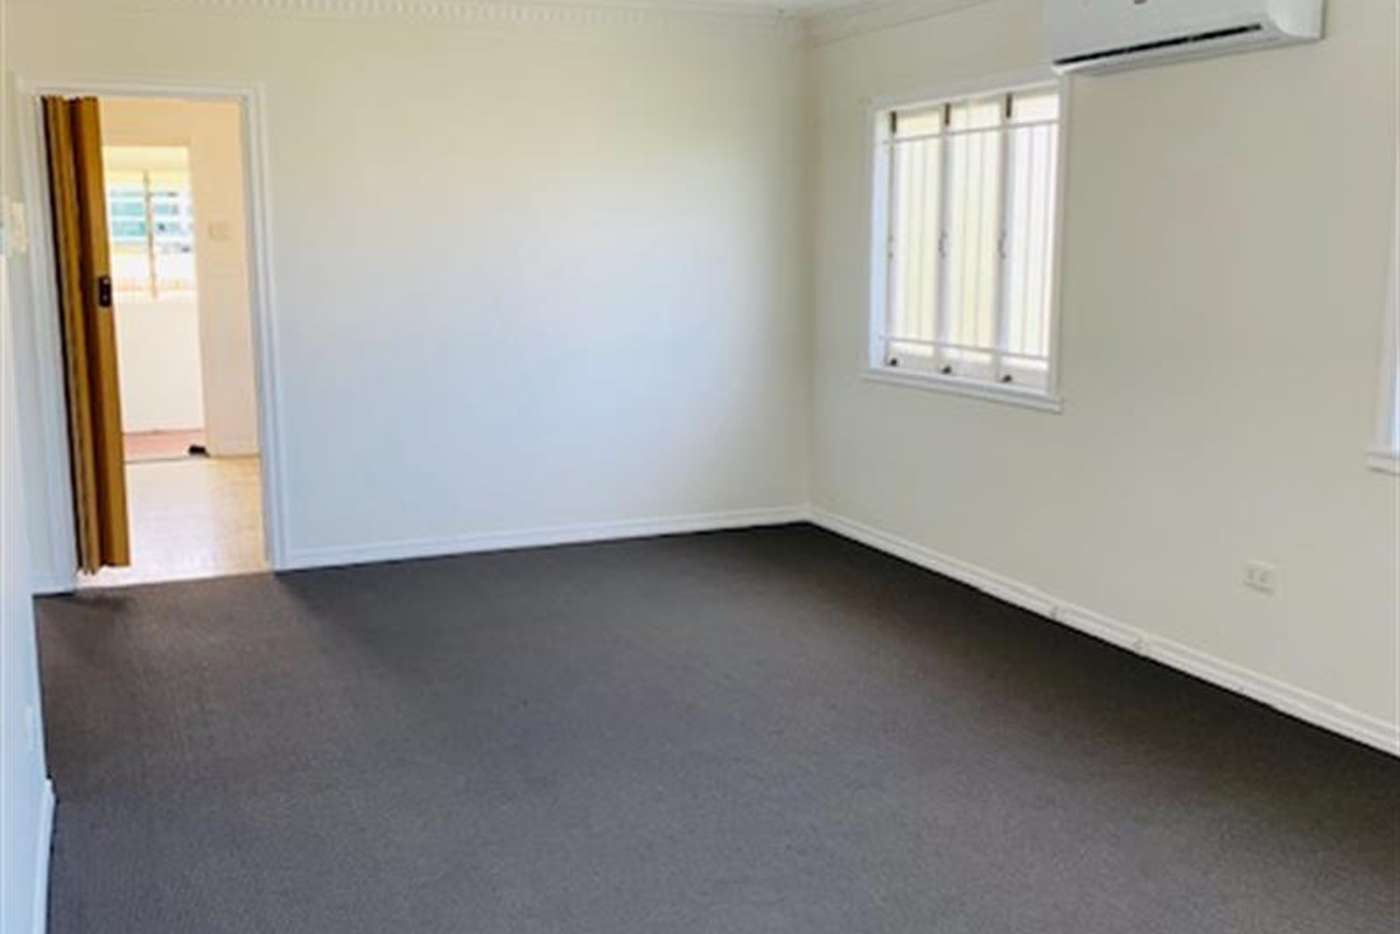 Sixth view of Homely house listing, 24 Effingham  Street, Tarragindi QLD 4121